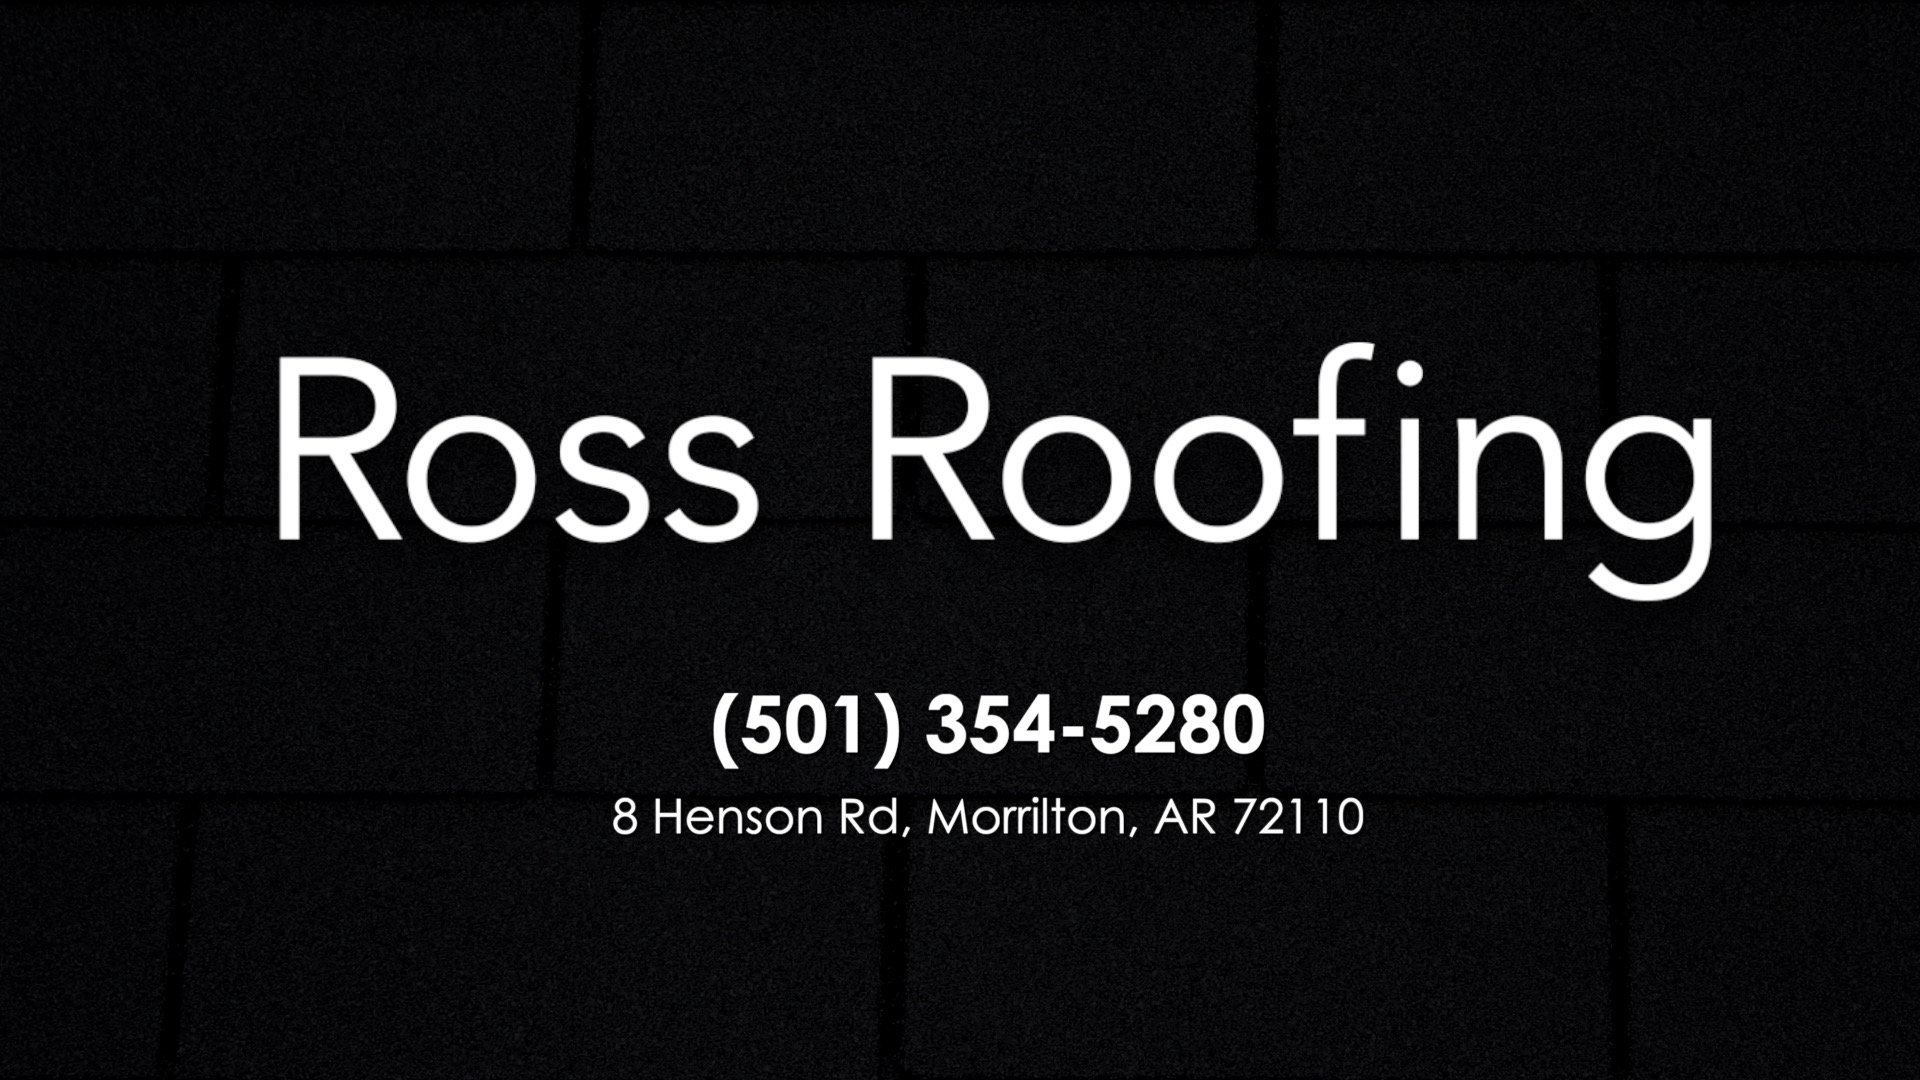 Roofing Company In Morrilton Ar Ross Roofing Llc